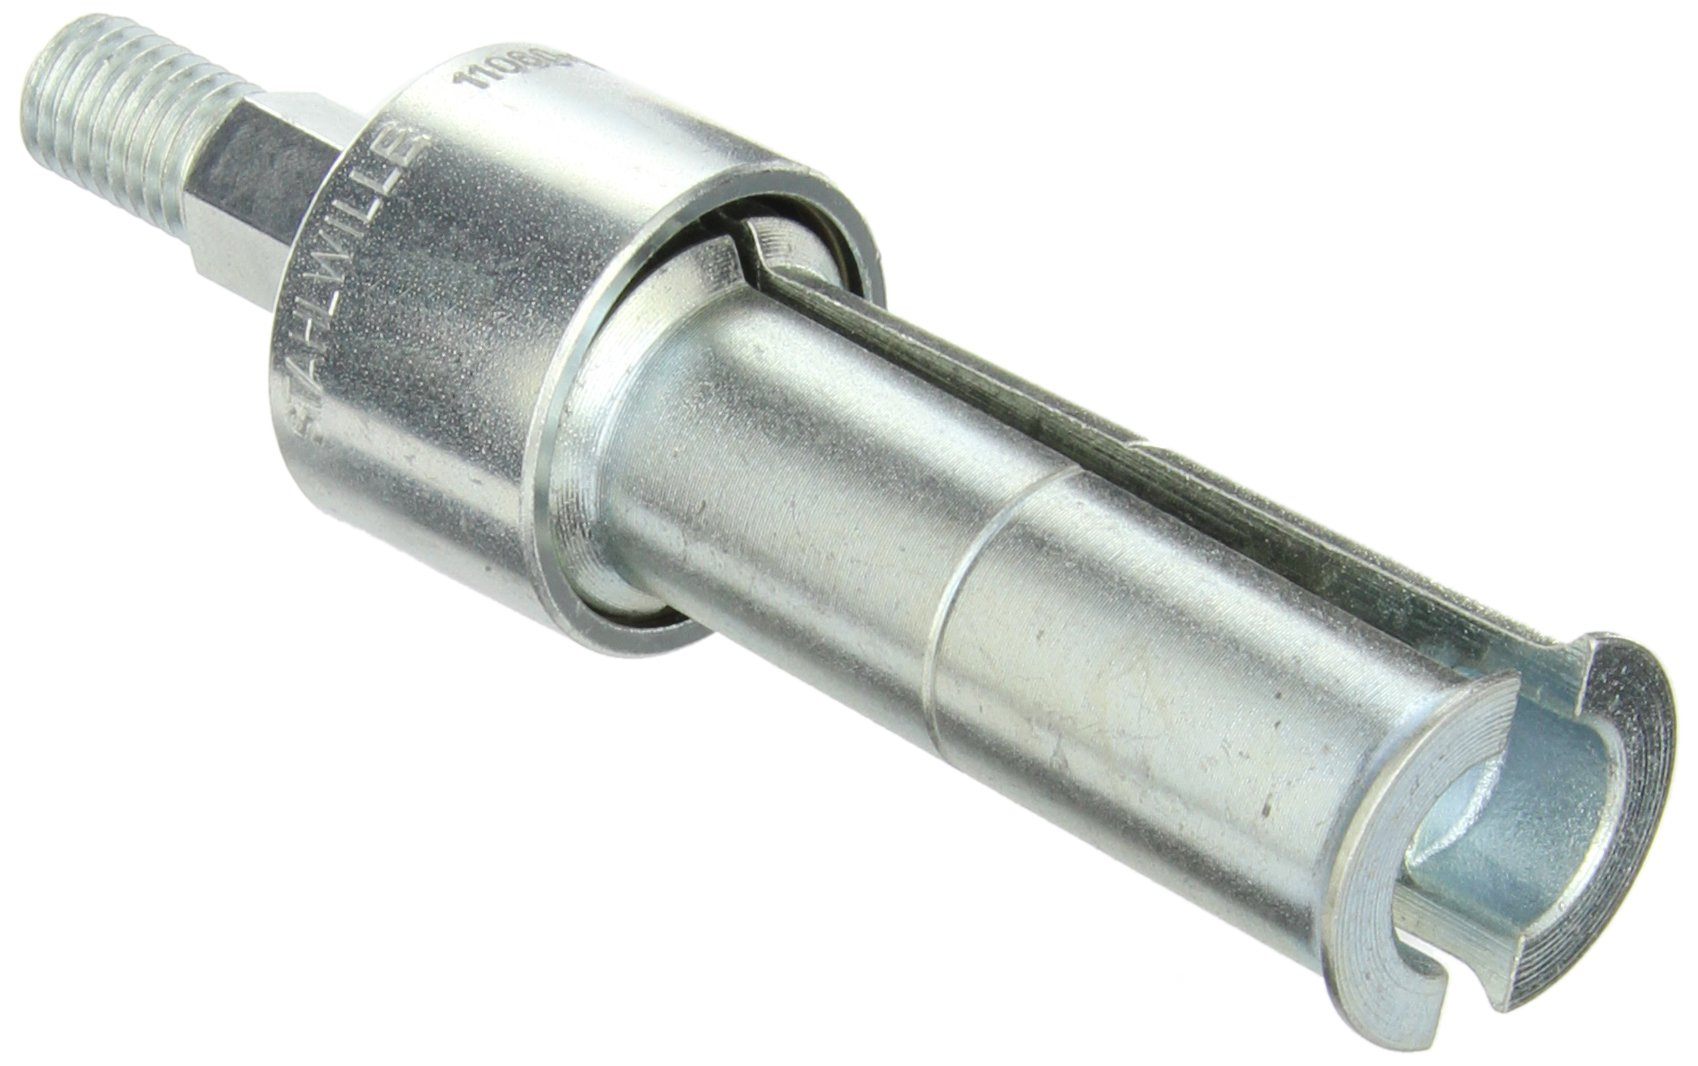 Stahlwille SF11060-3 Internal Puller, Size 3, 27-36mm Clamp Width